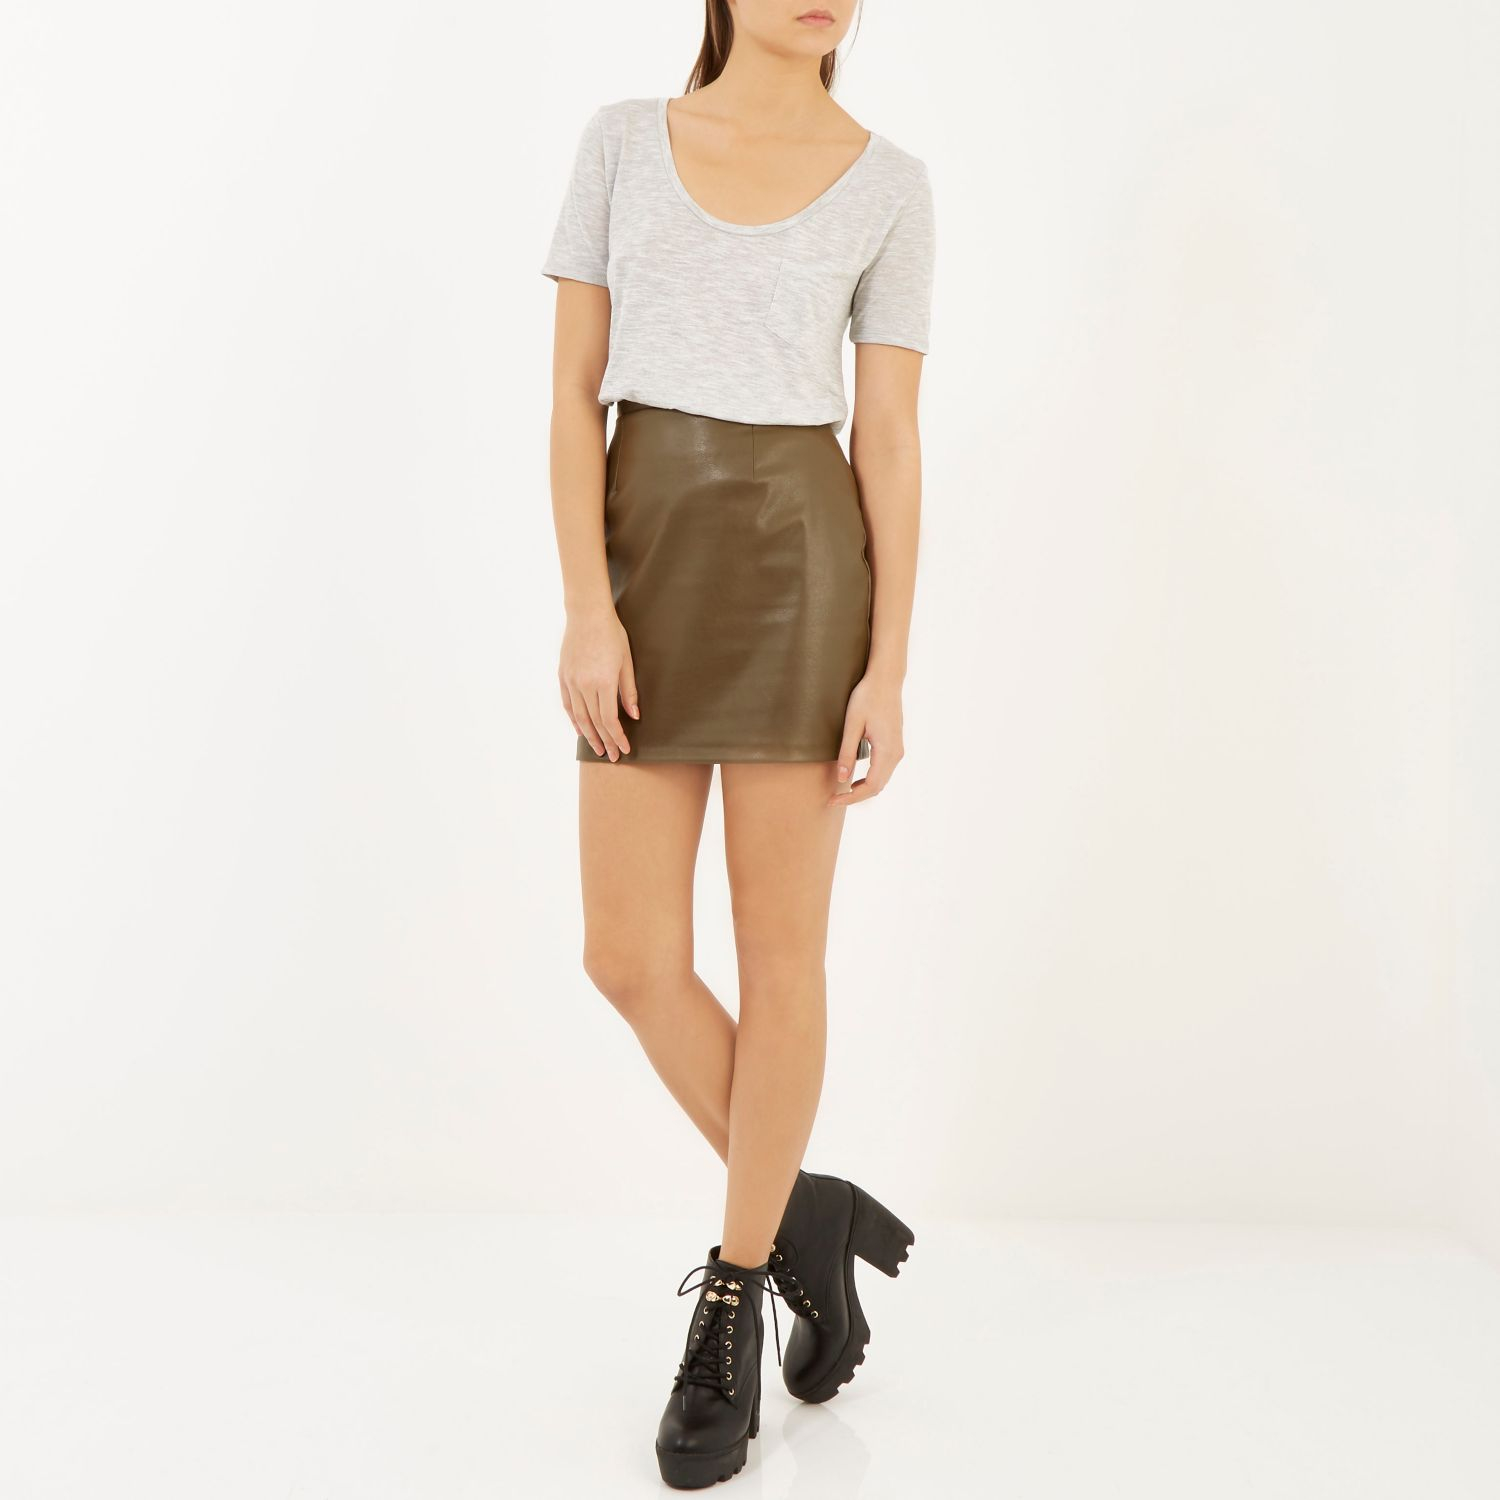 Khaki leather skirt river island – Fashionable skirts 2017 photo blog